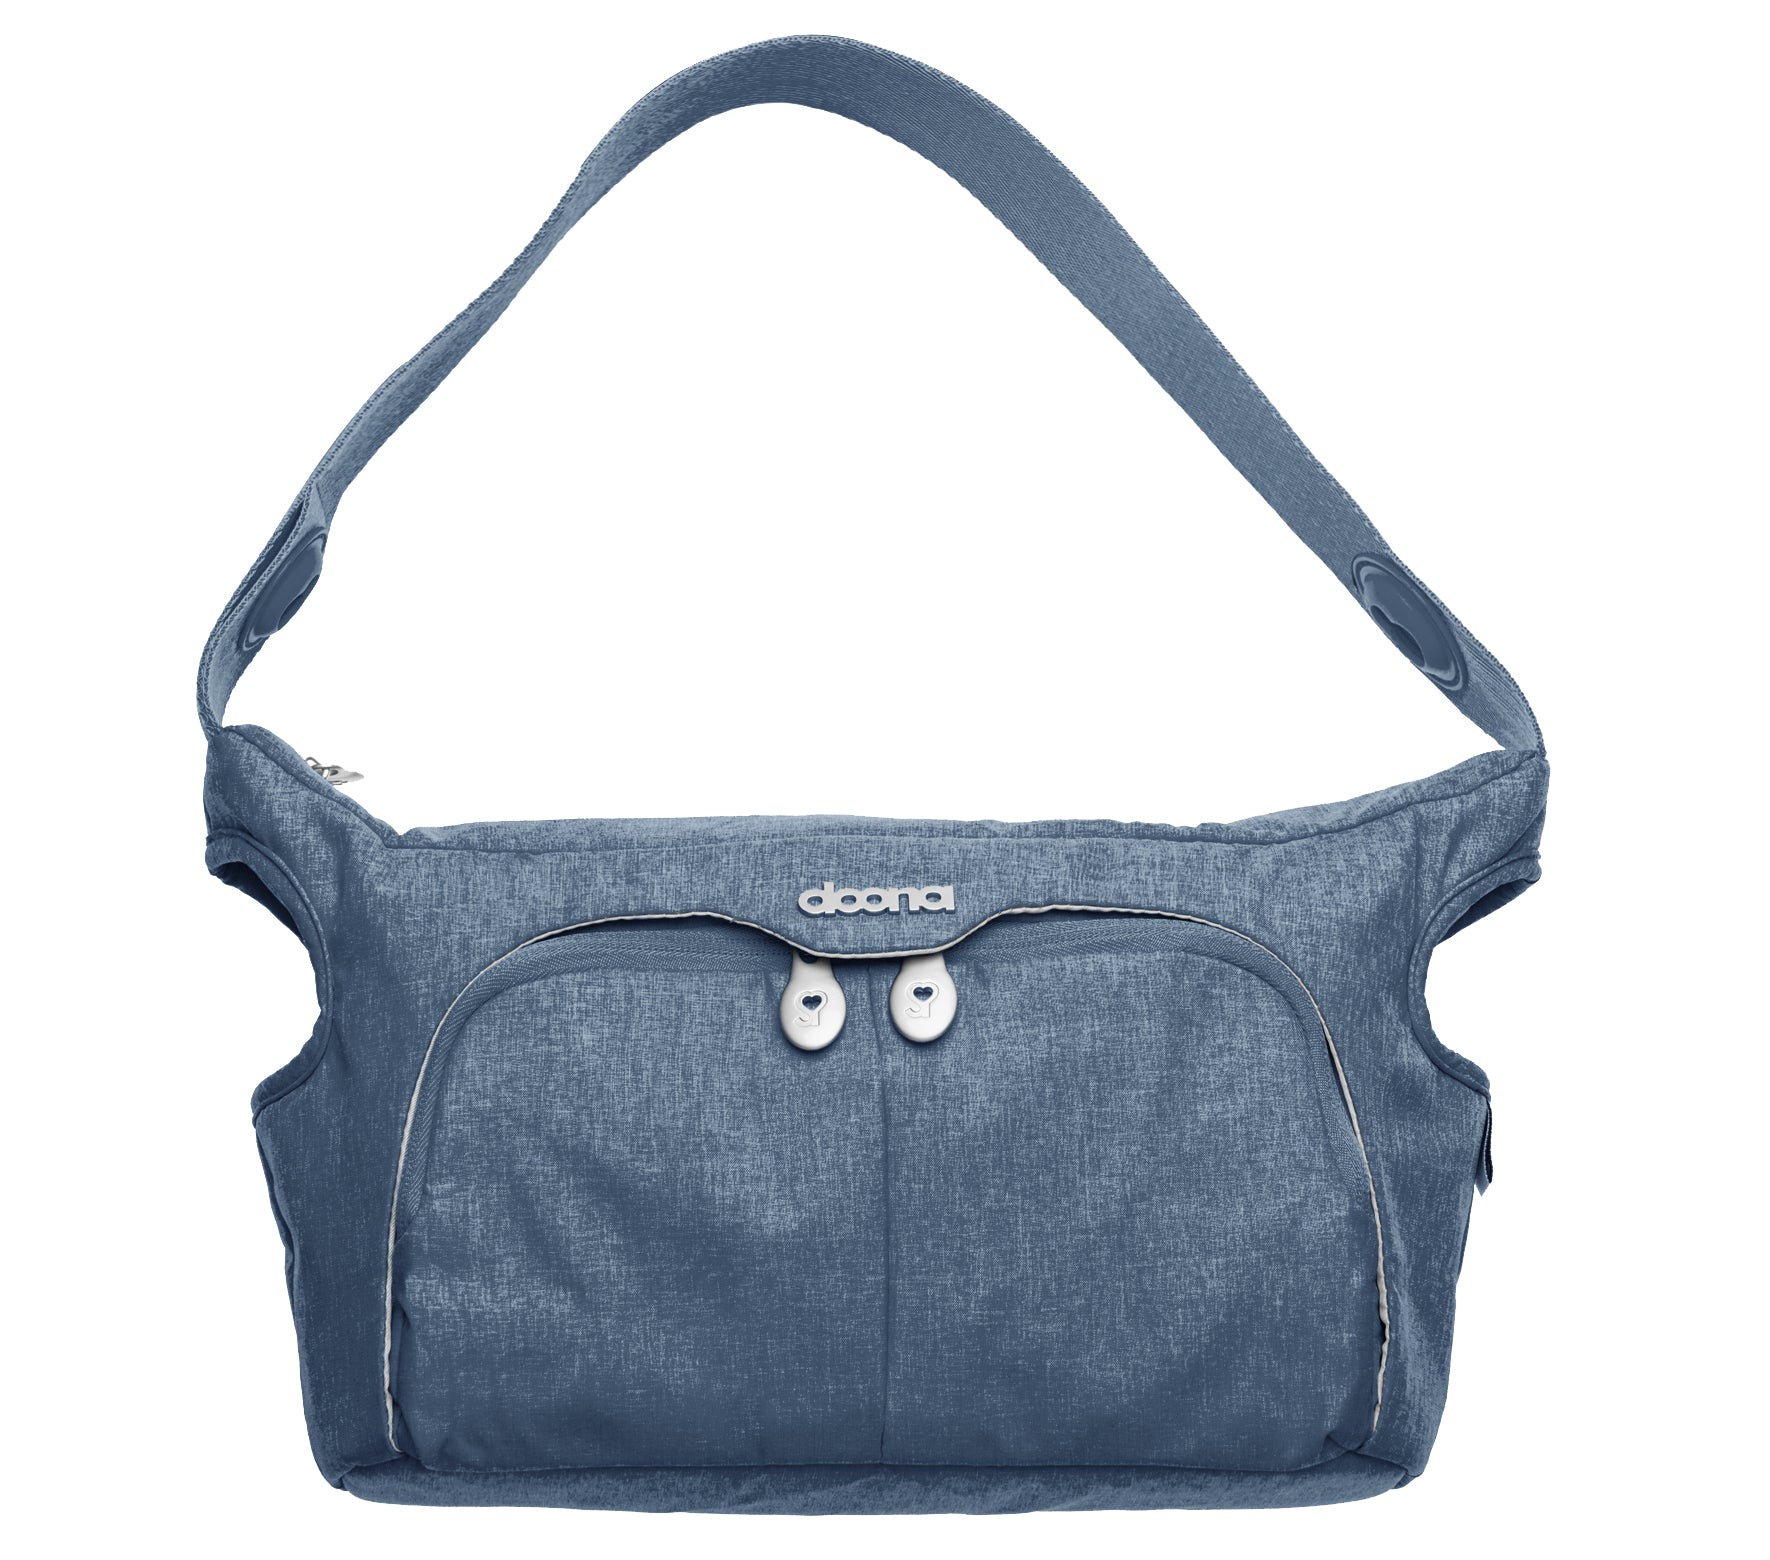 Doona Essentials Bag - Marine